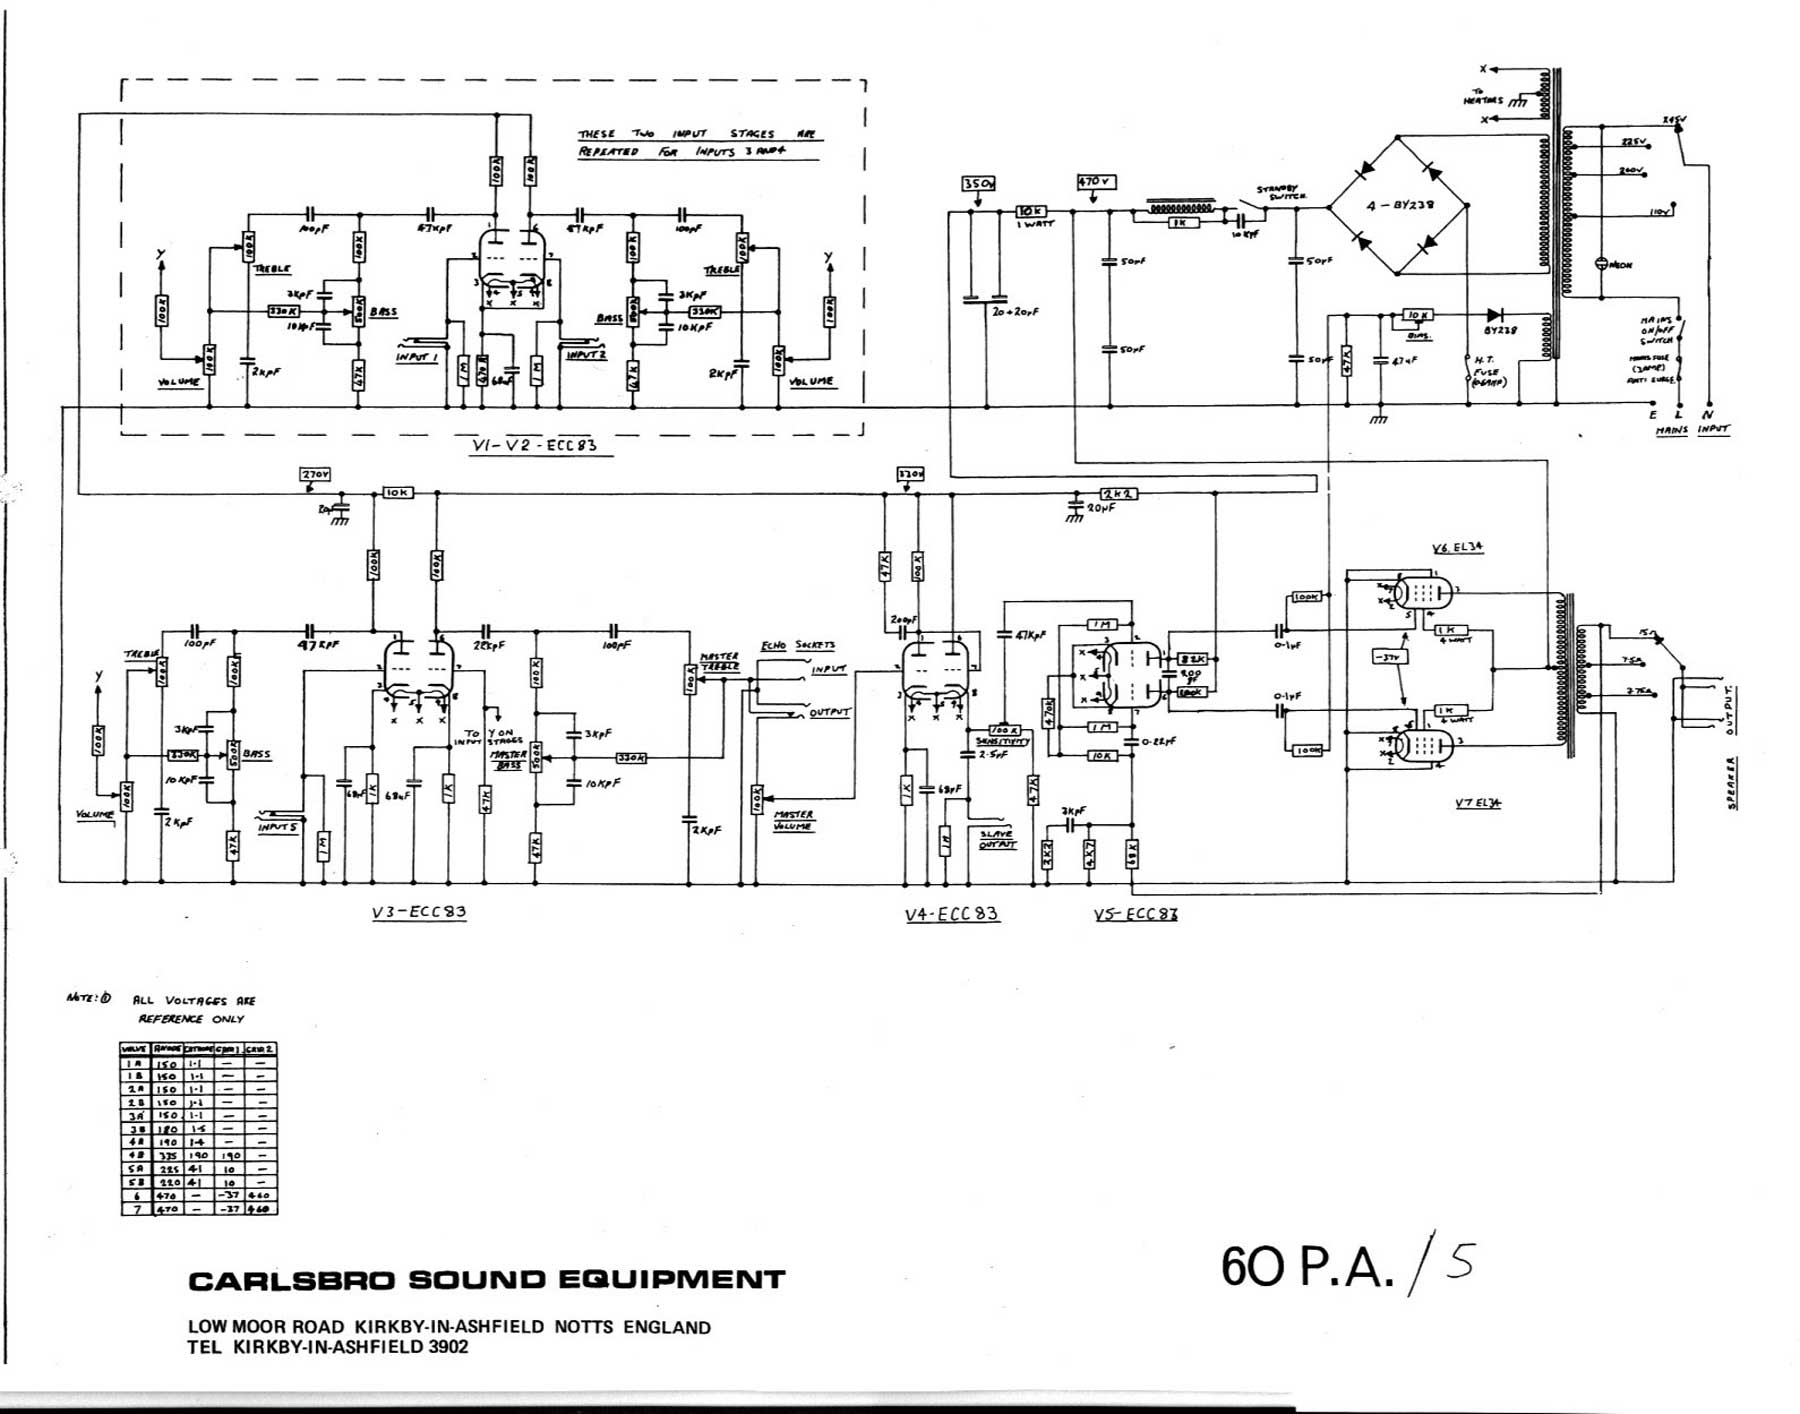 60pa5 carlsbro 60 pa 5 amp schematic pa wiring diagram at panicattacktreatment.co